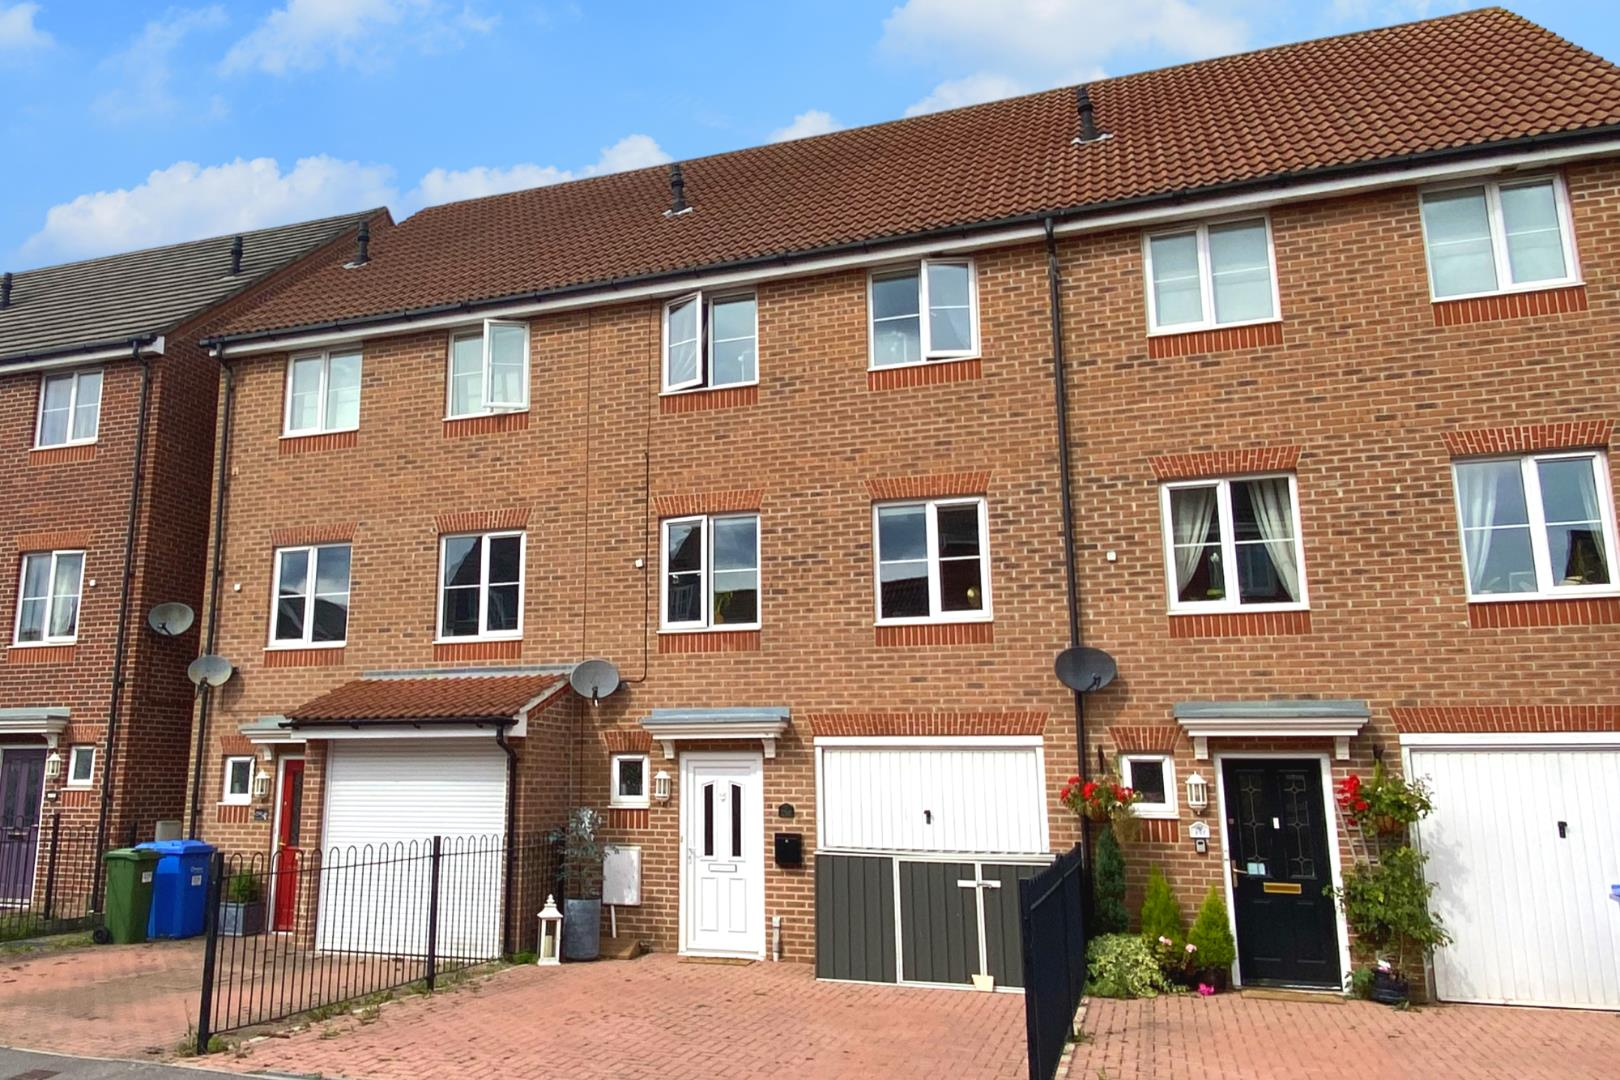 4 bed town house for sale, GU12